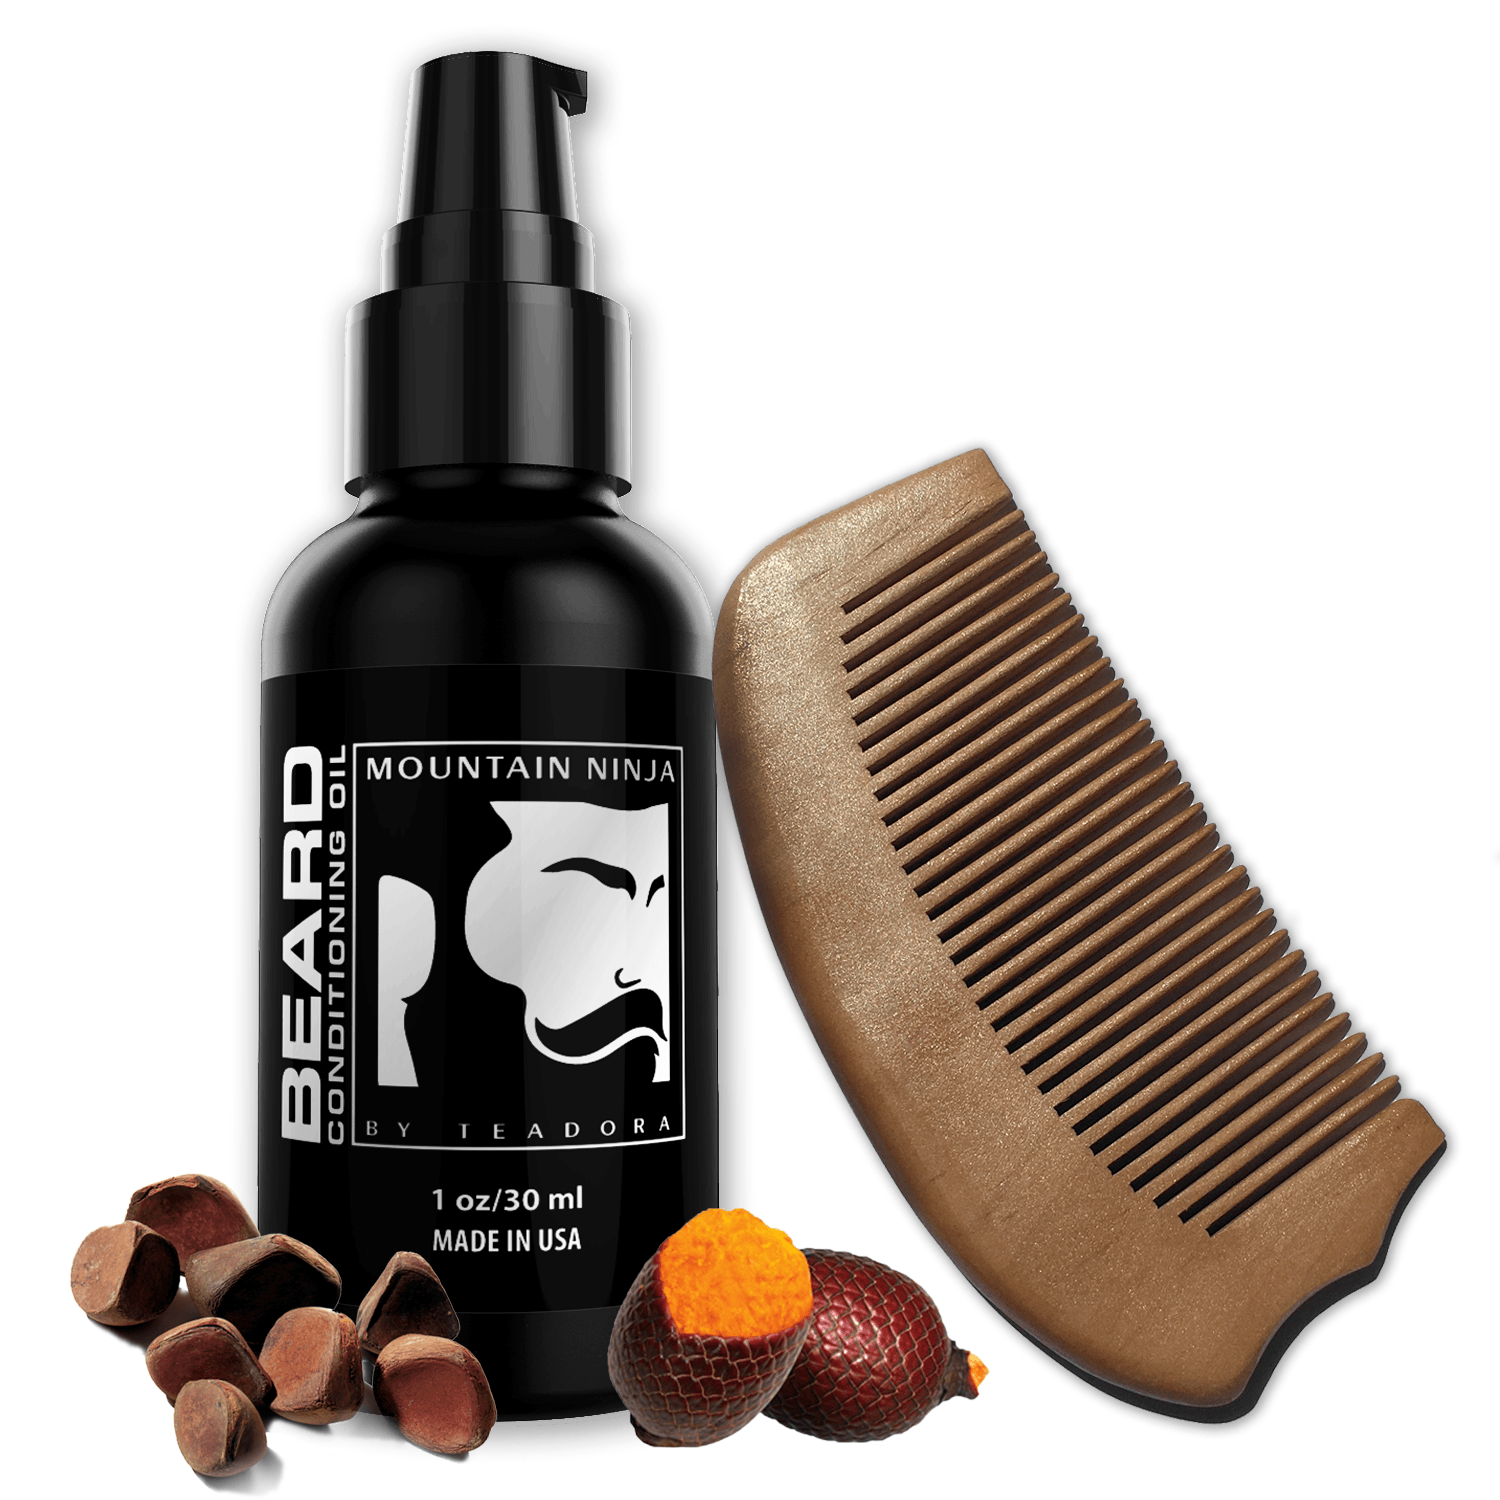 Beard Oil & Beard Comb Set - Teadora